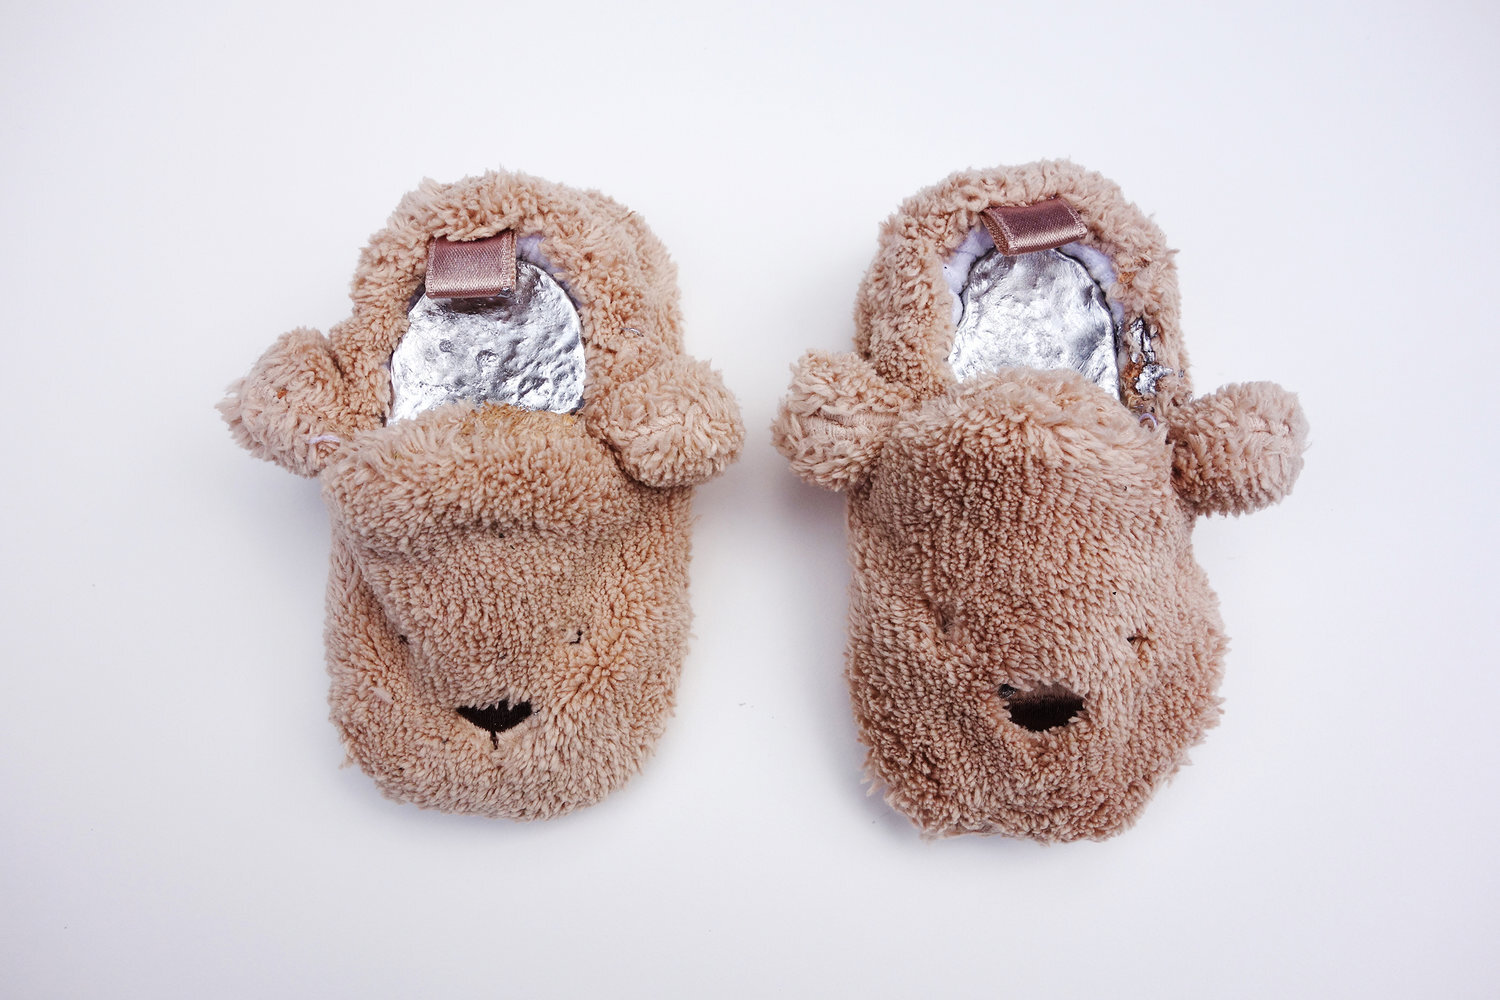 From  PIPE DREAMS  2017  Baby shoes altered with lead